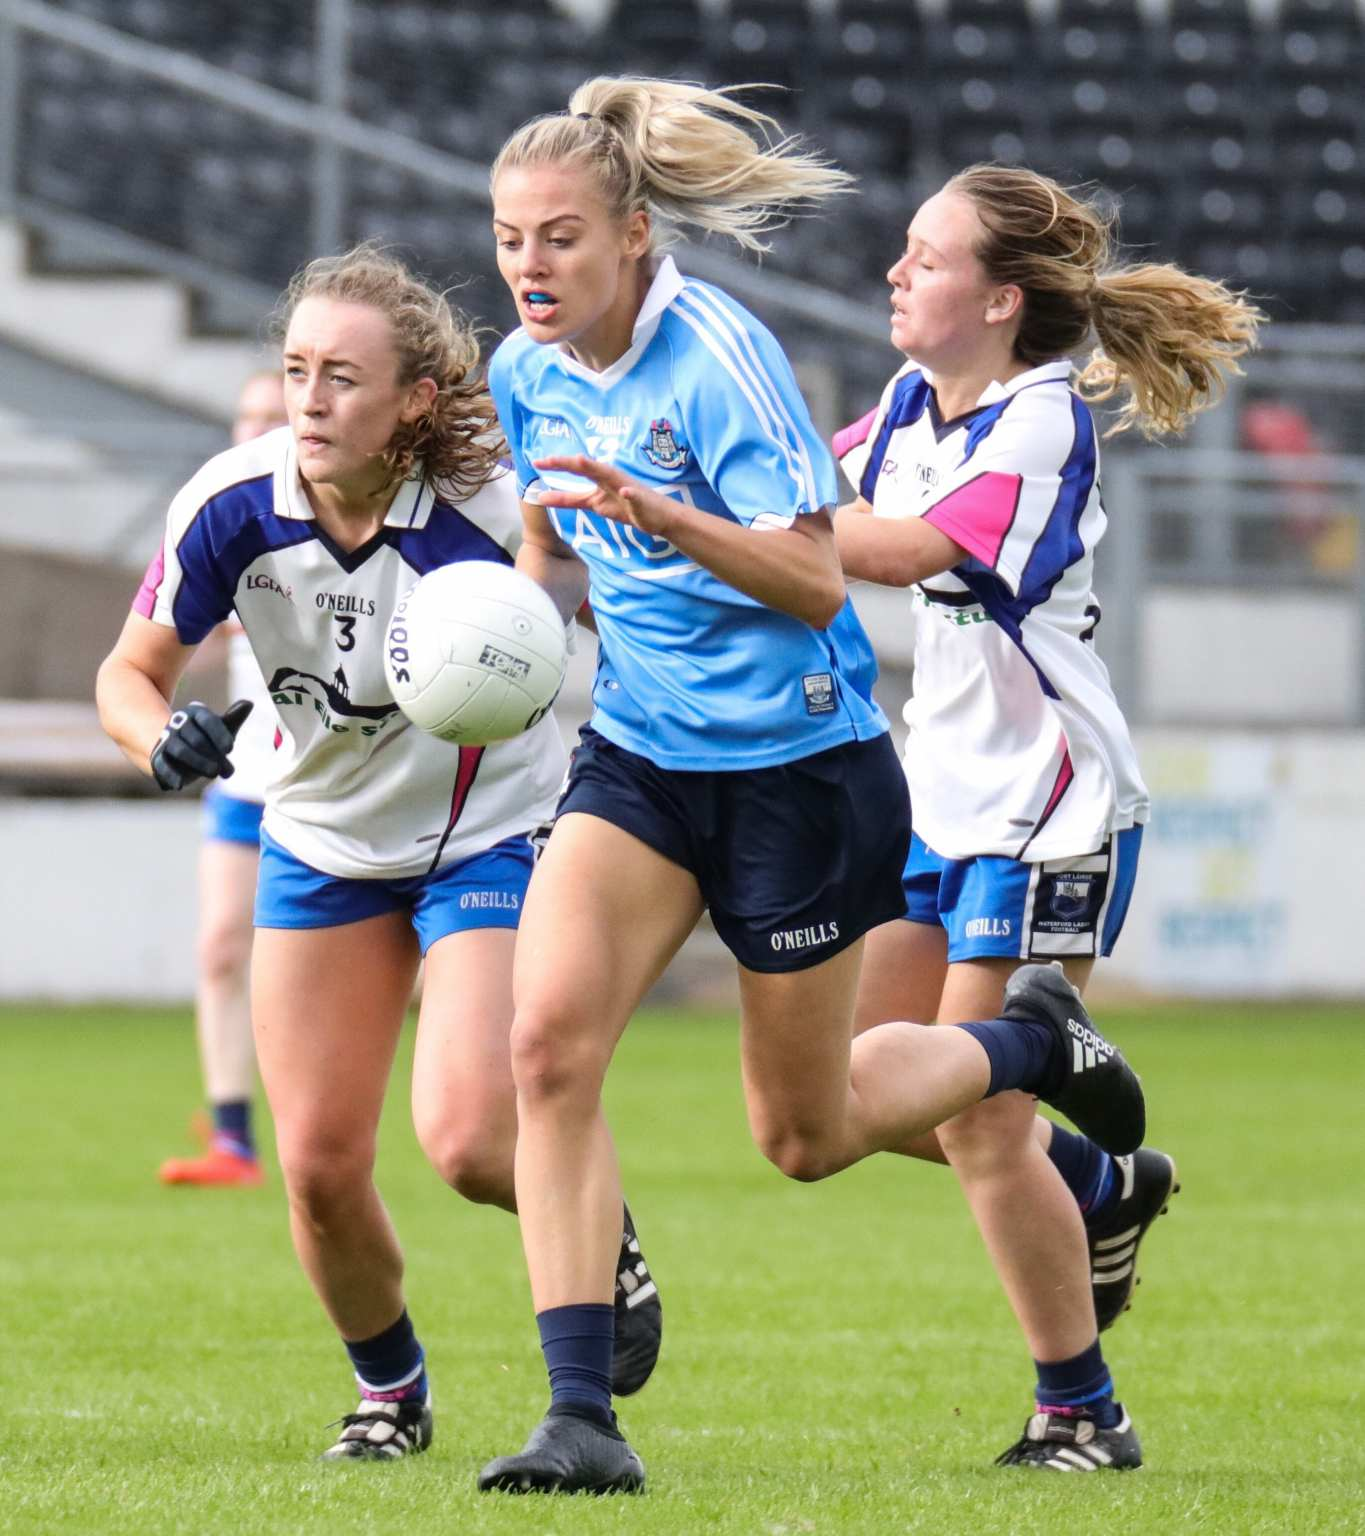 Nicole Owens from Senior Champions Dublin in Action against two Waterford players in 2017, both sides meet again on the 13th of July on the opening day of the All Ireland series.